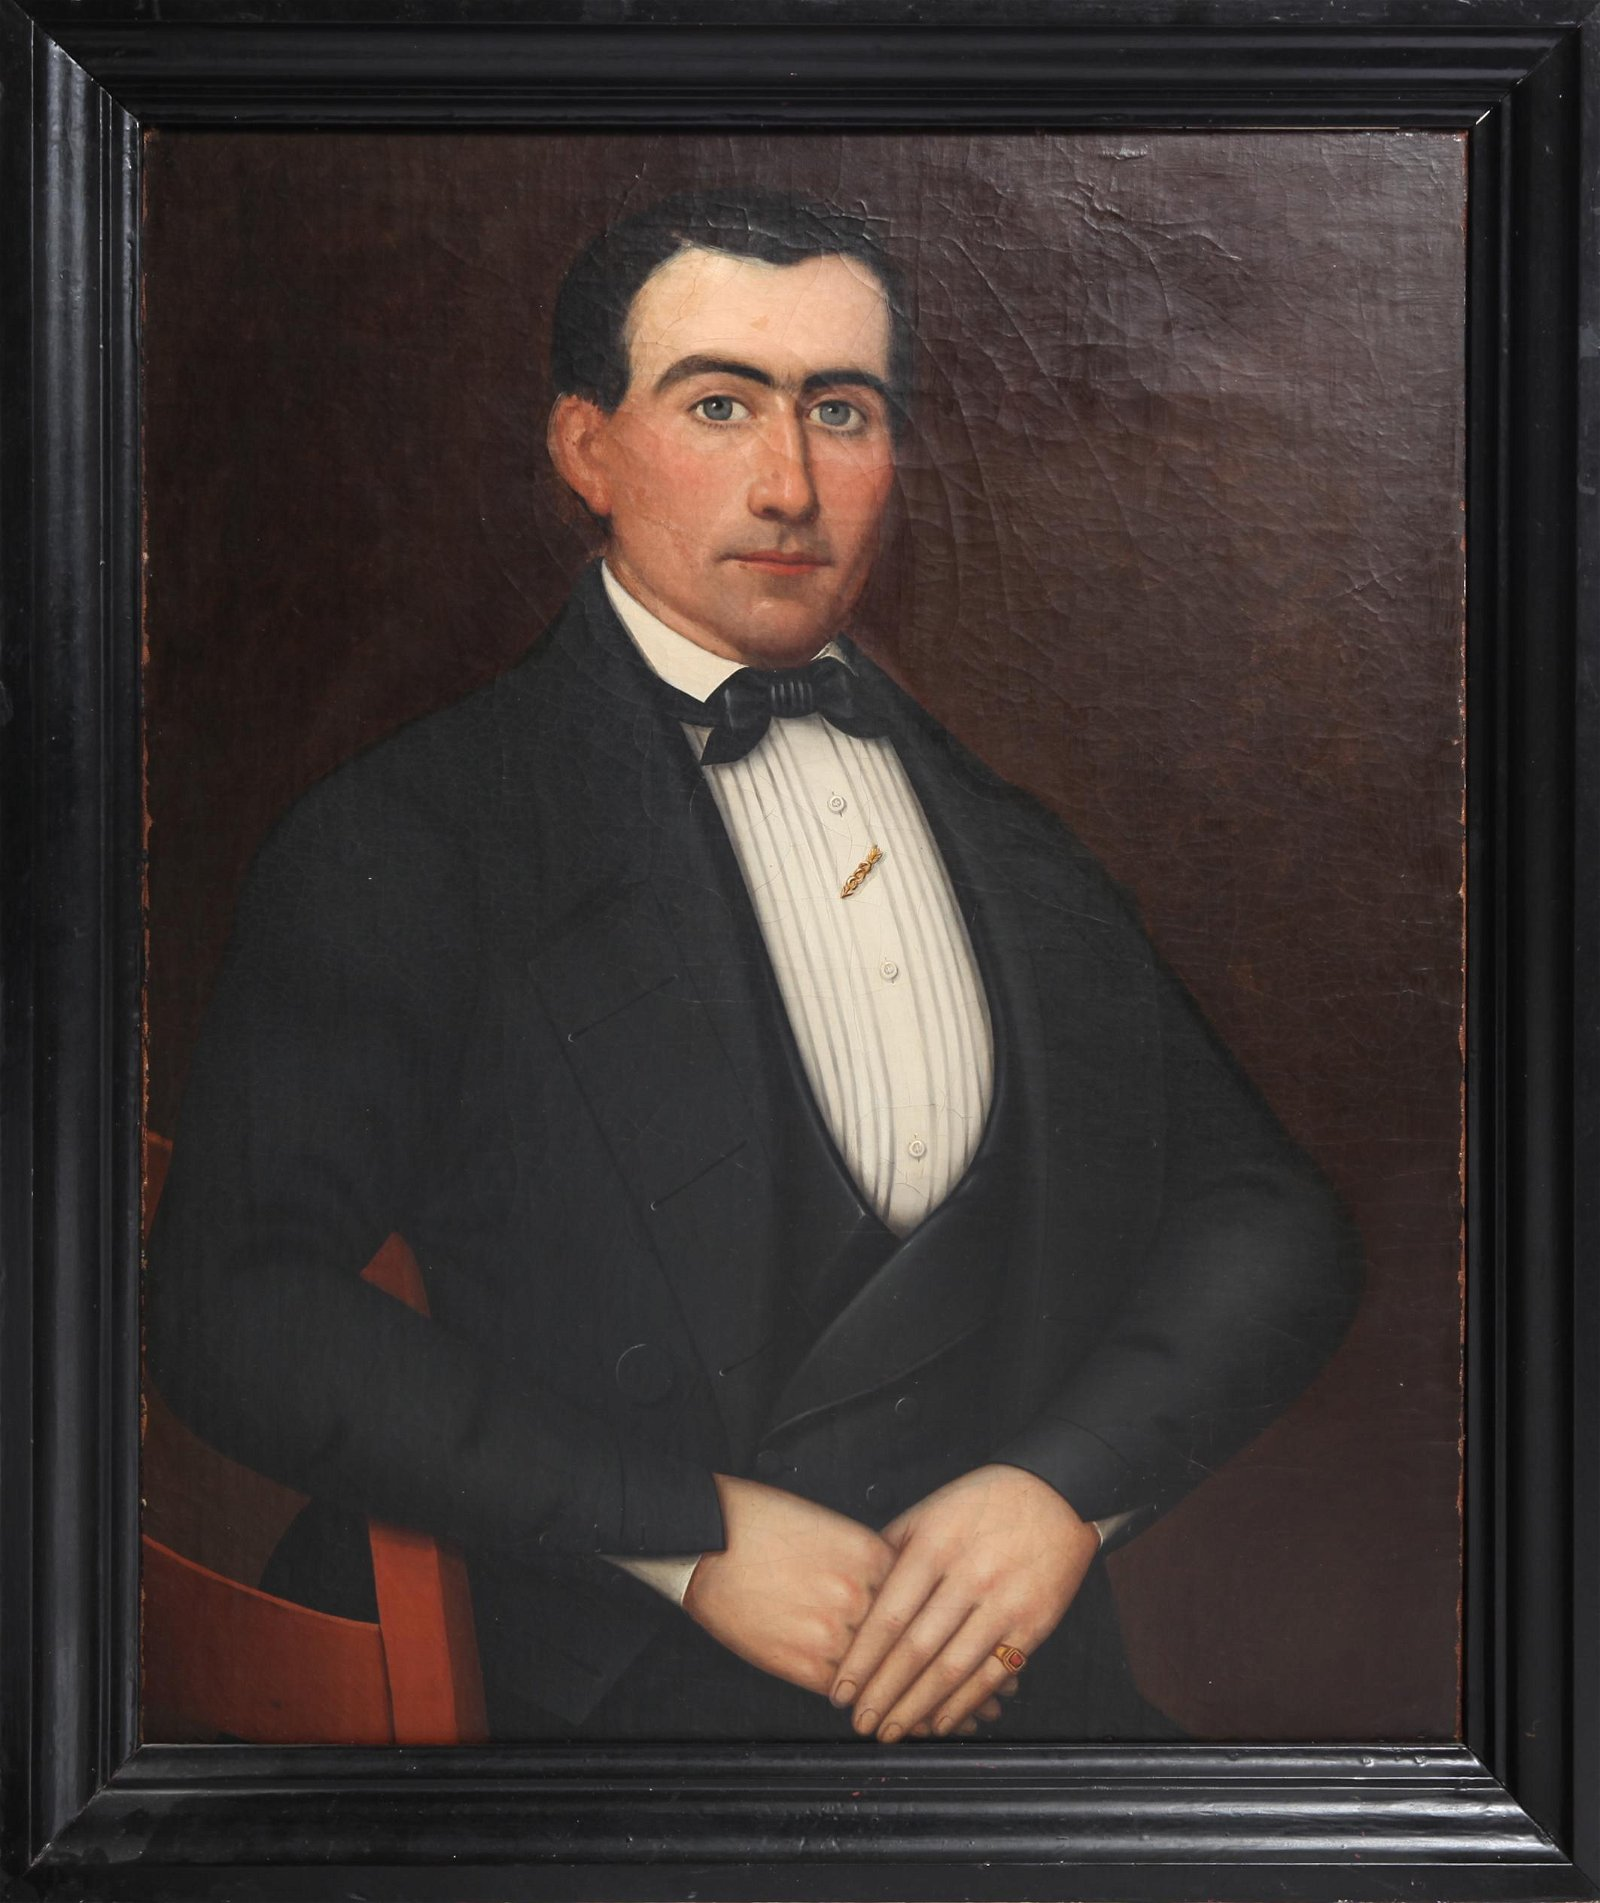 American School Portrait of a Gentleman, Oil